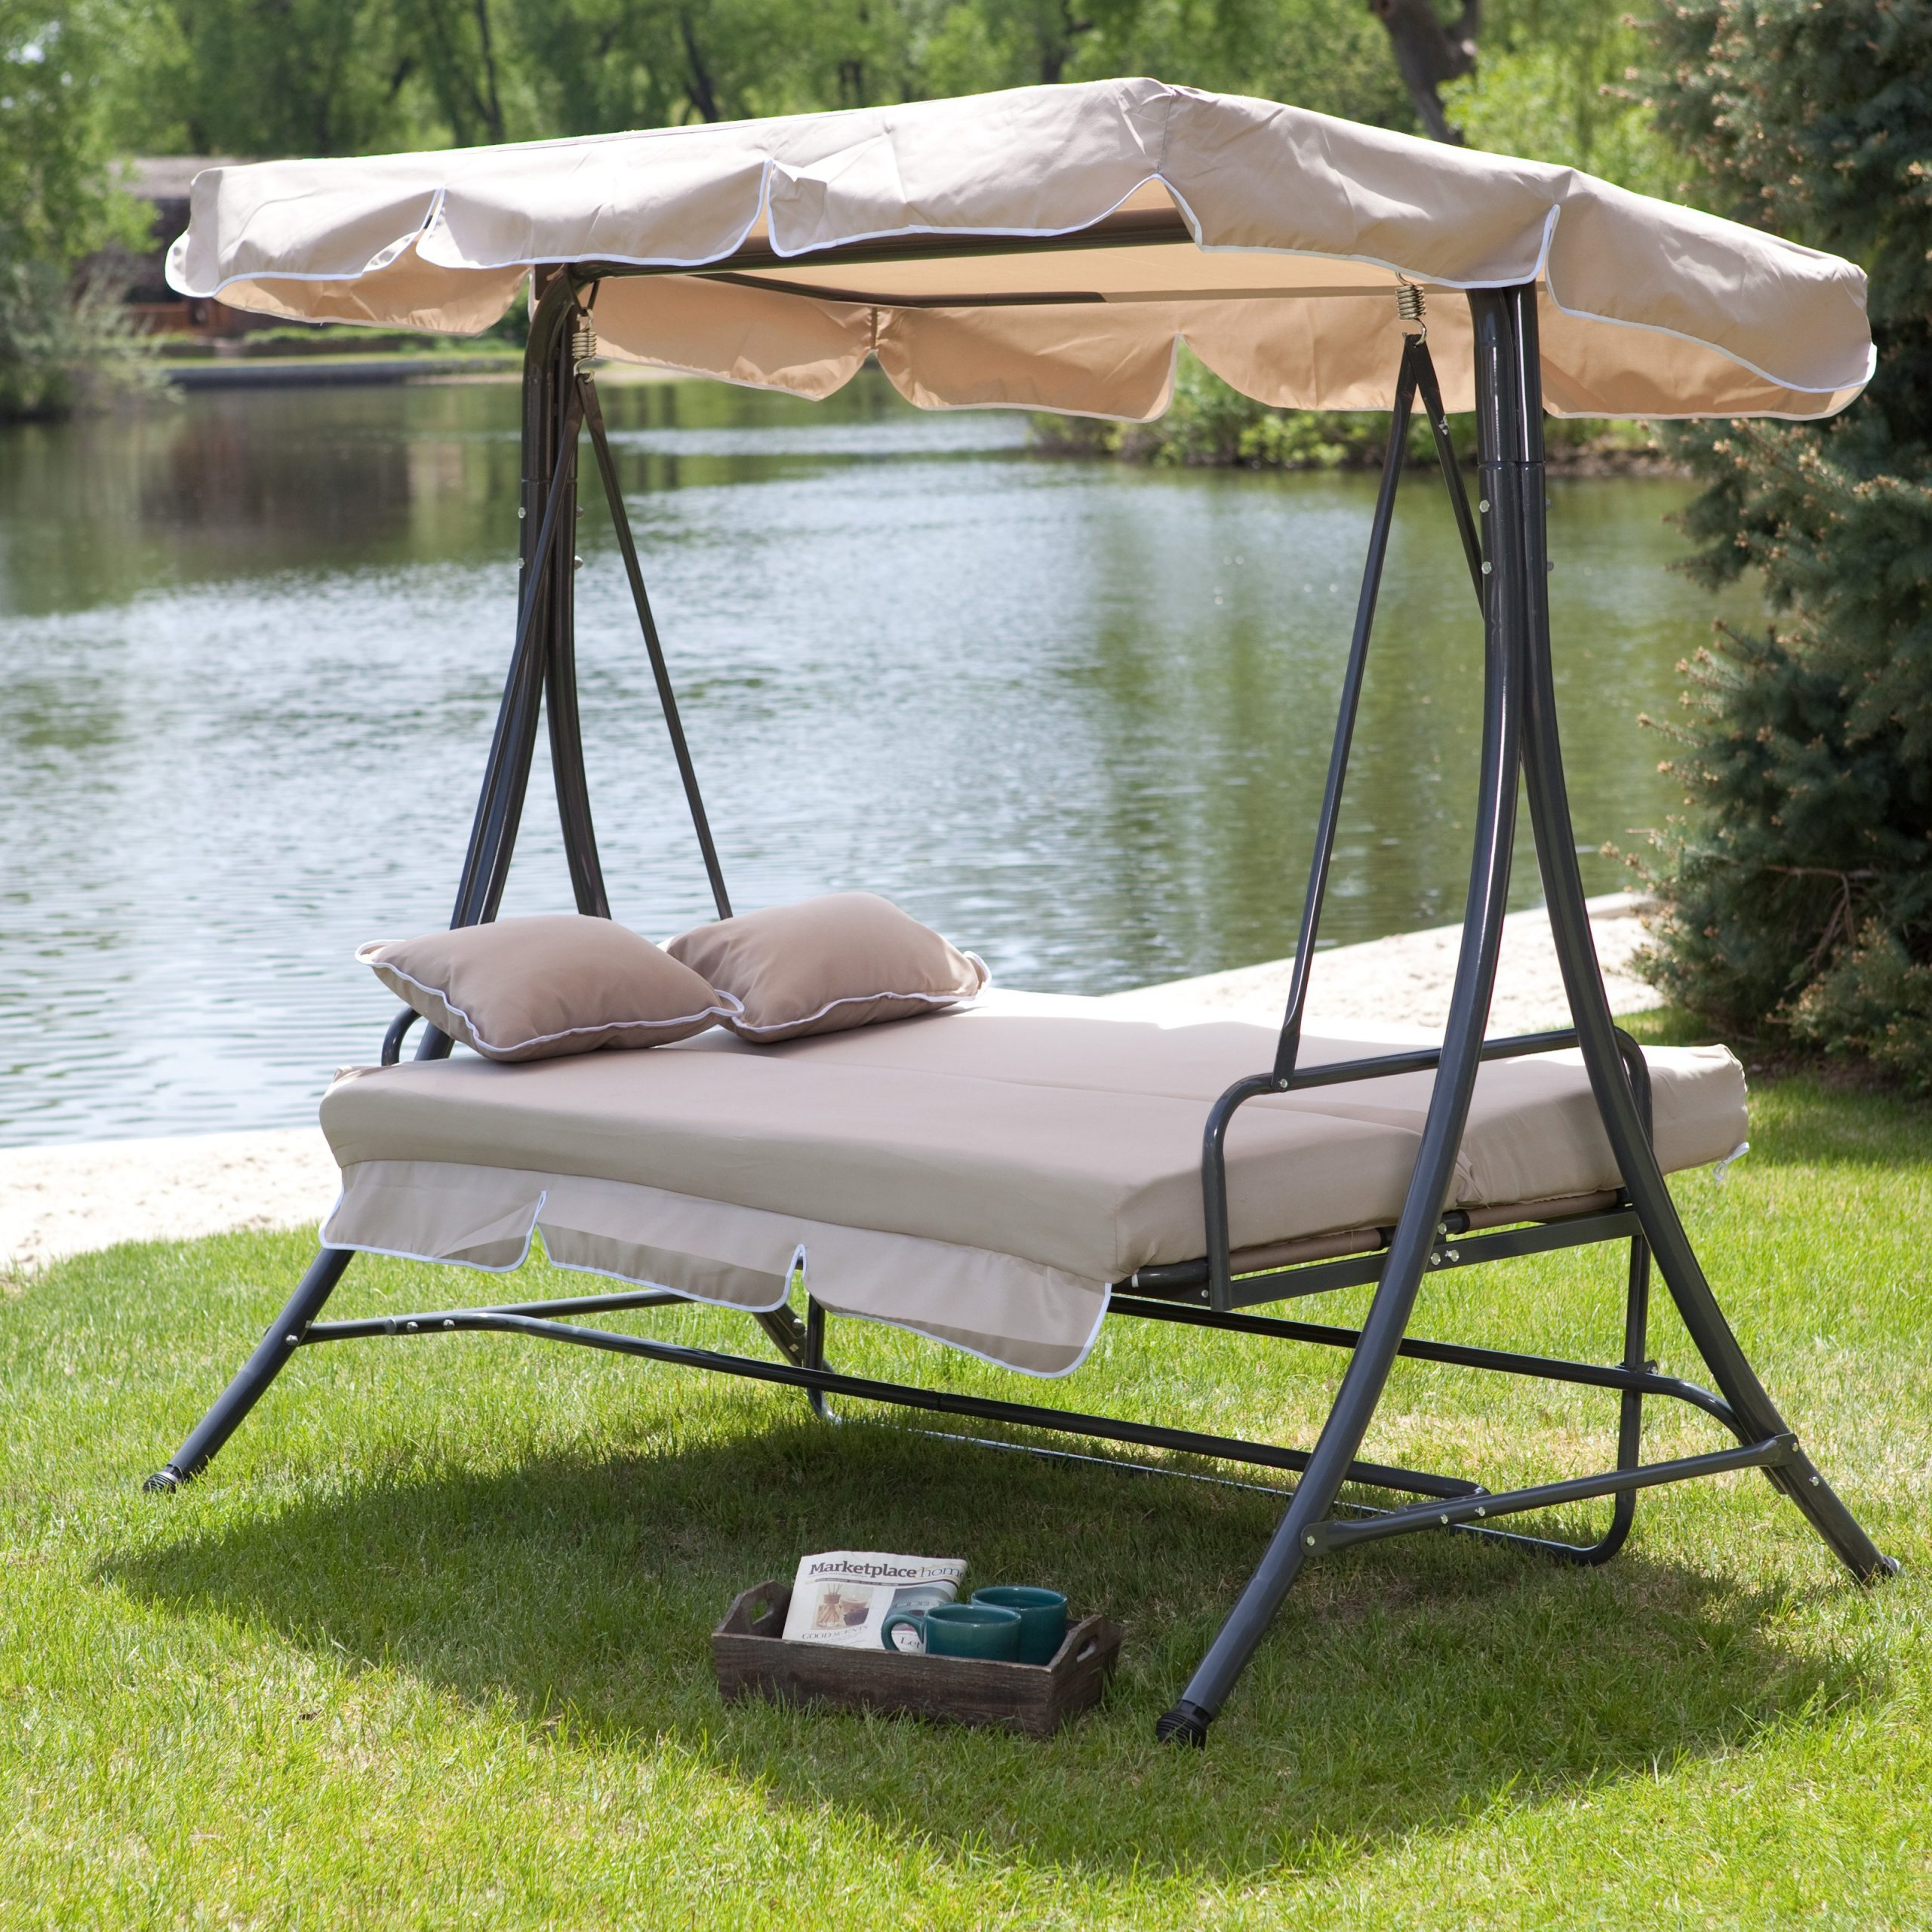 Hammock Patio Backyard Outdoor Swing Hanging Chair With Two Inside Outdoor Canopy Hammock Porch Swings With Stand (View 4 of 25)